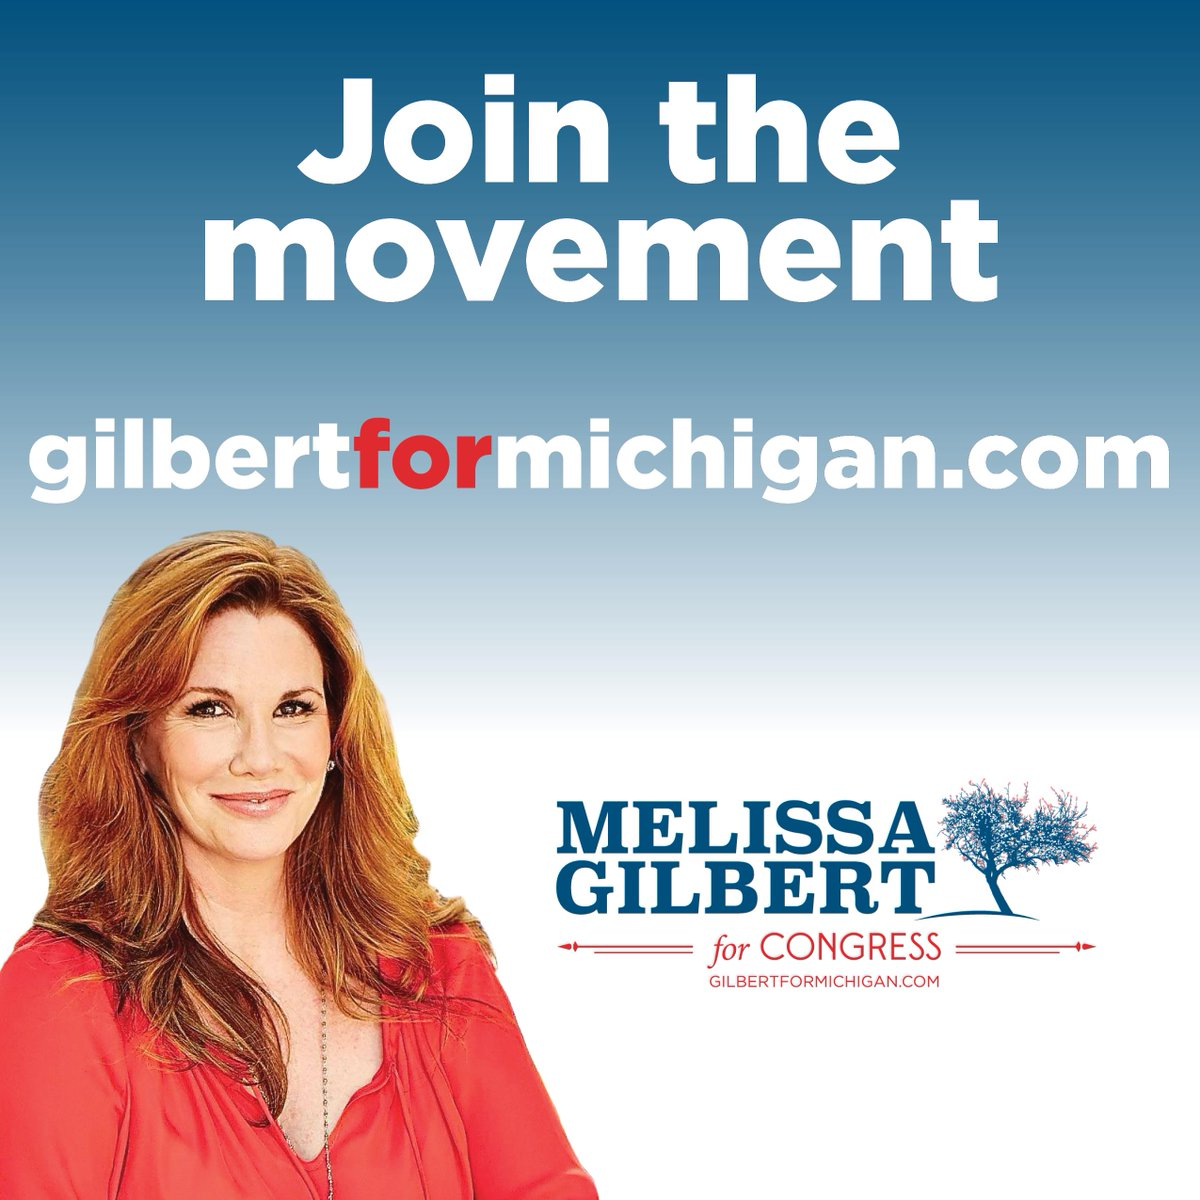 So moved by all the excitement surrounding the campaign already! RT and sign up at http://t.co/WTUEZukVeX #MI08 http://t.co/ErggQ9rFlW